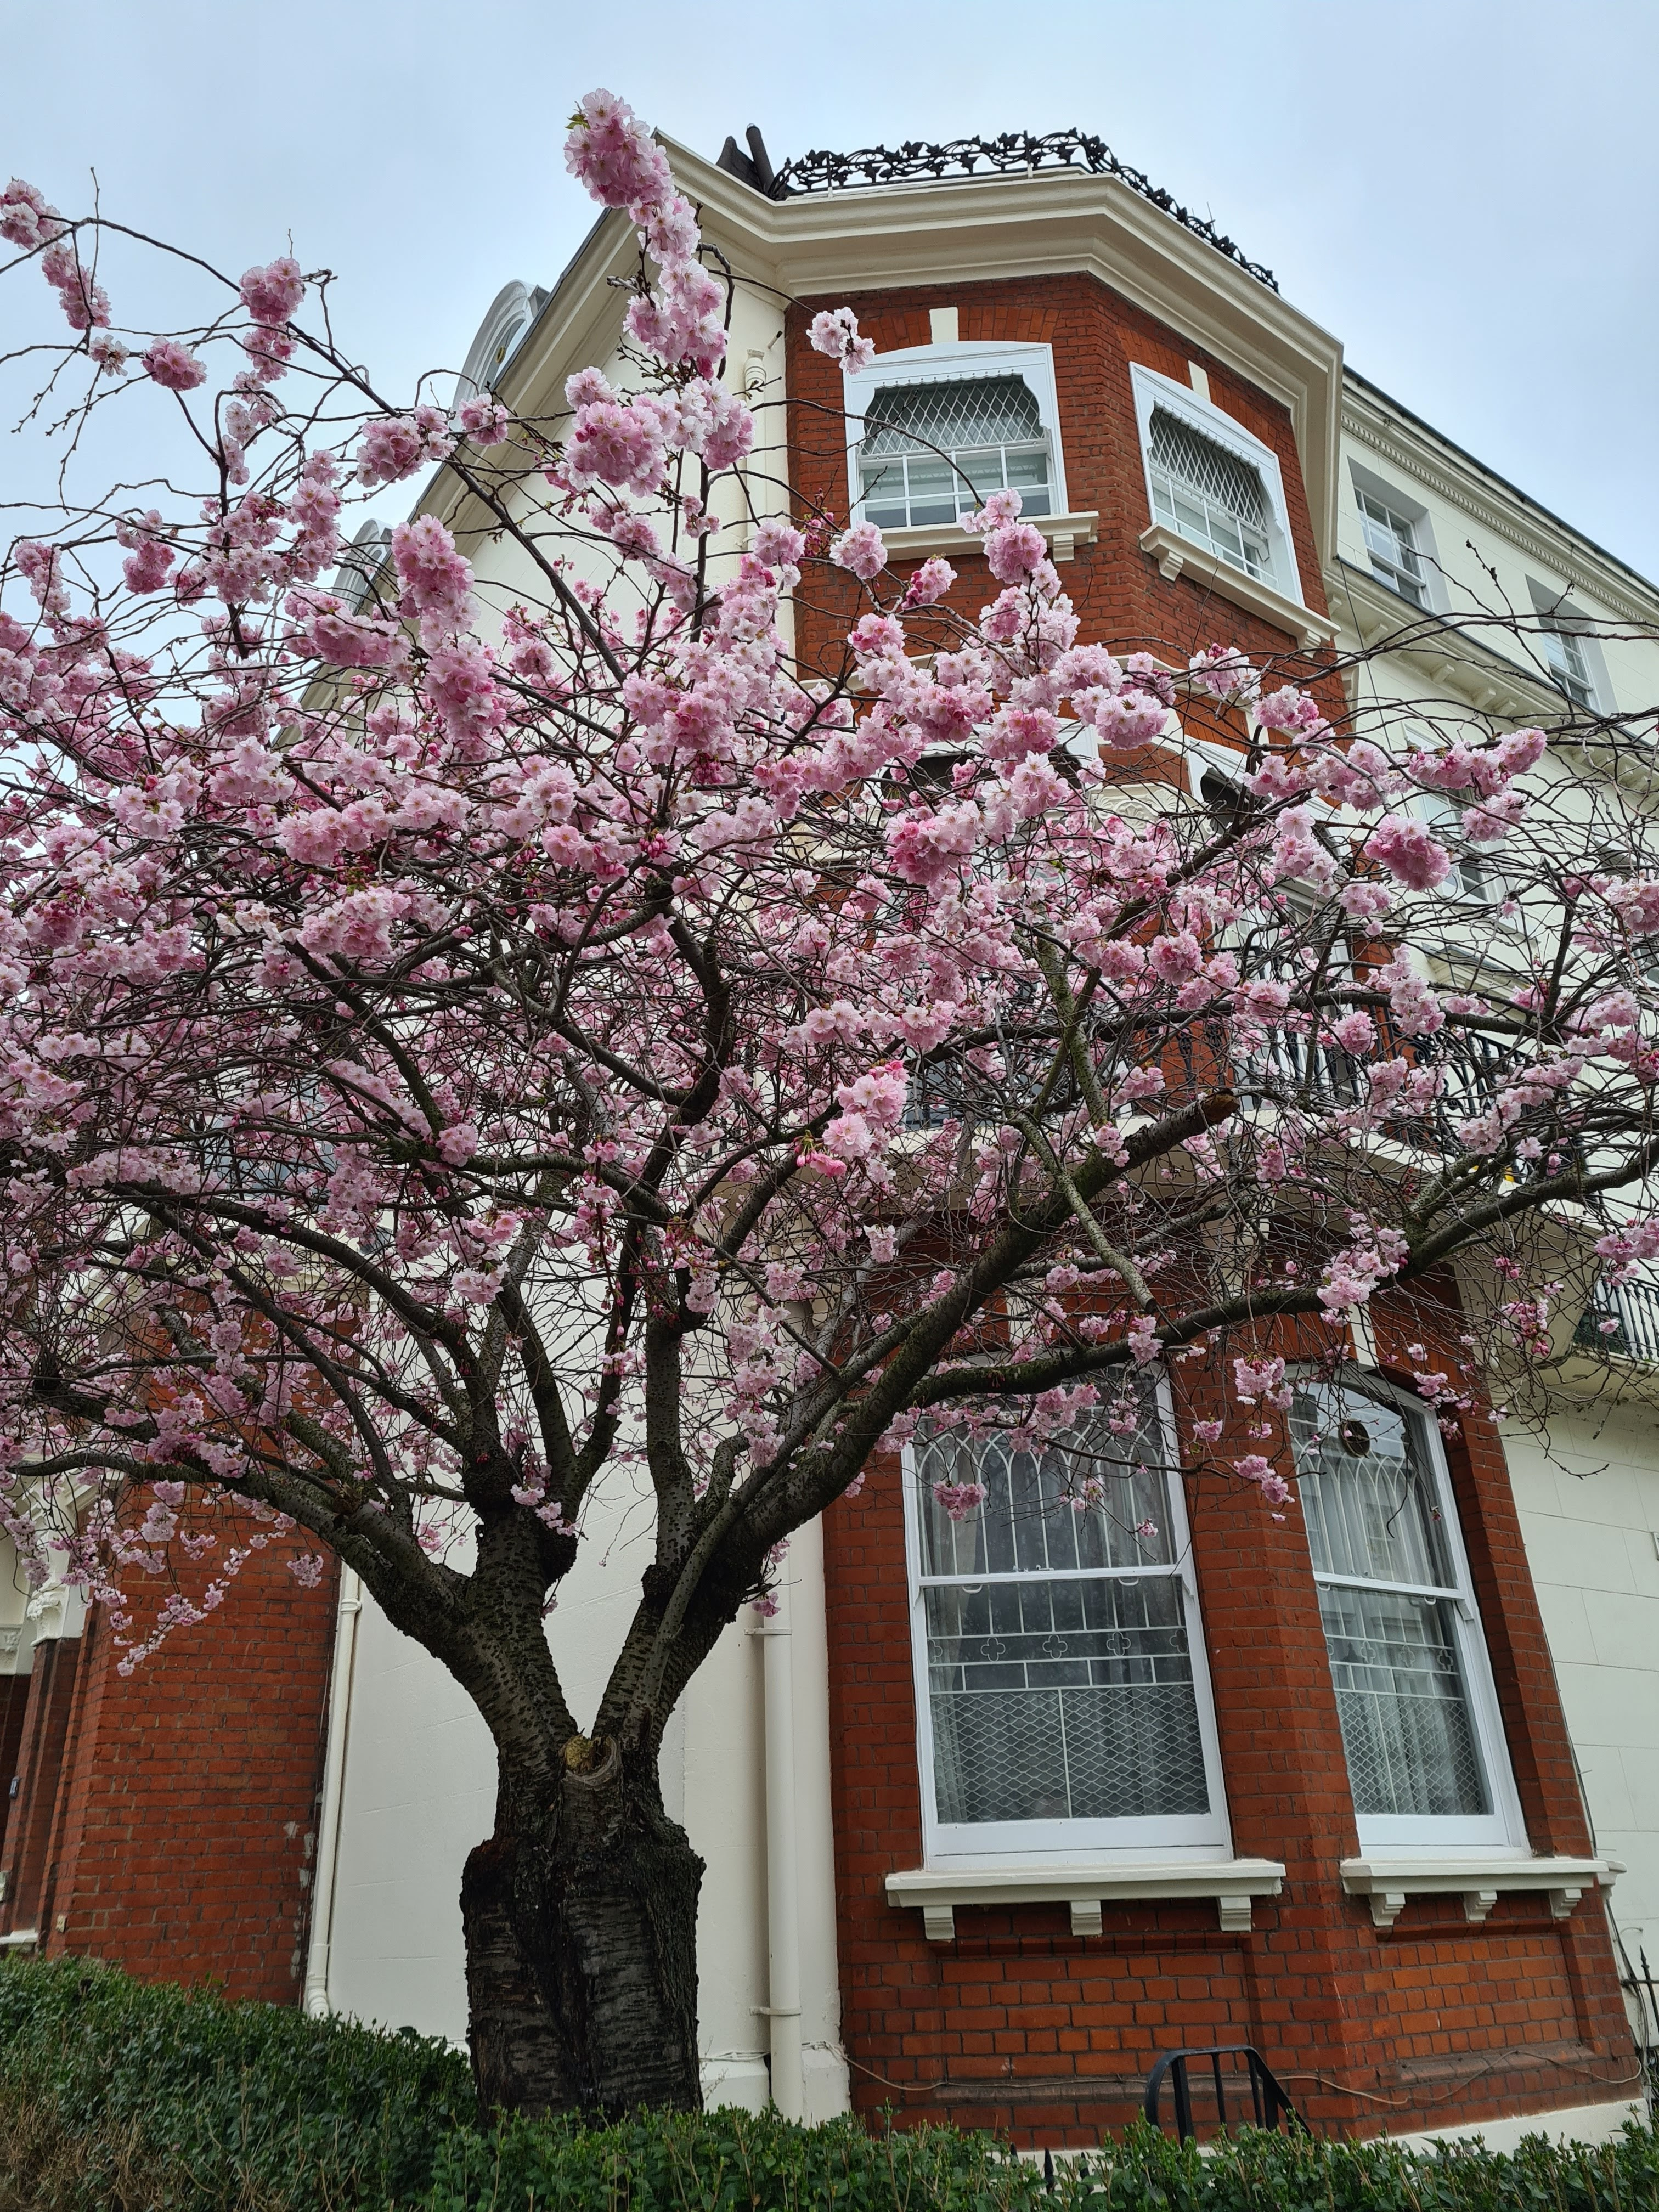 Instagrammable blossom London